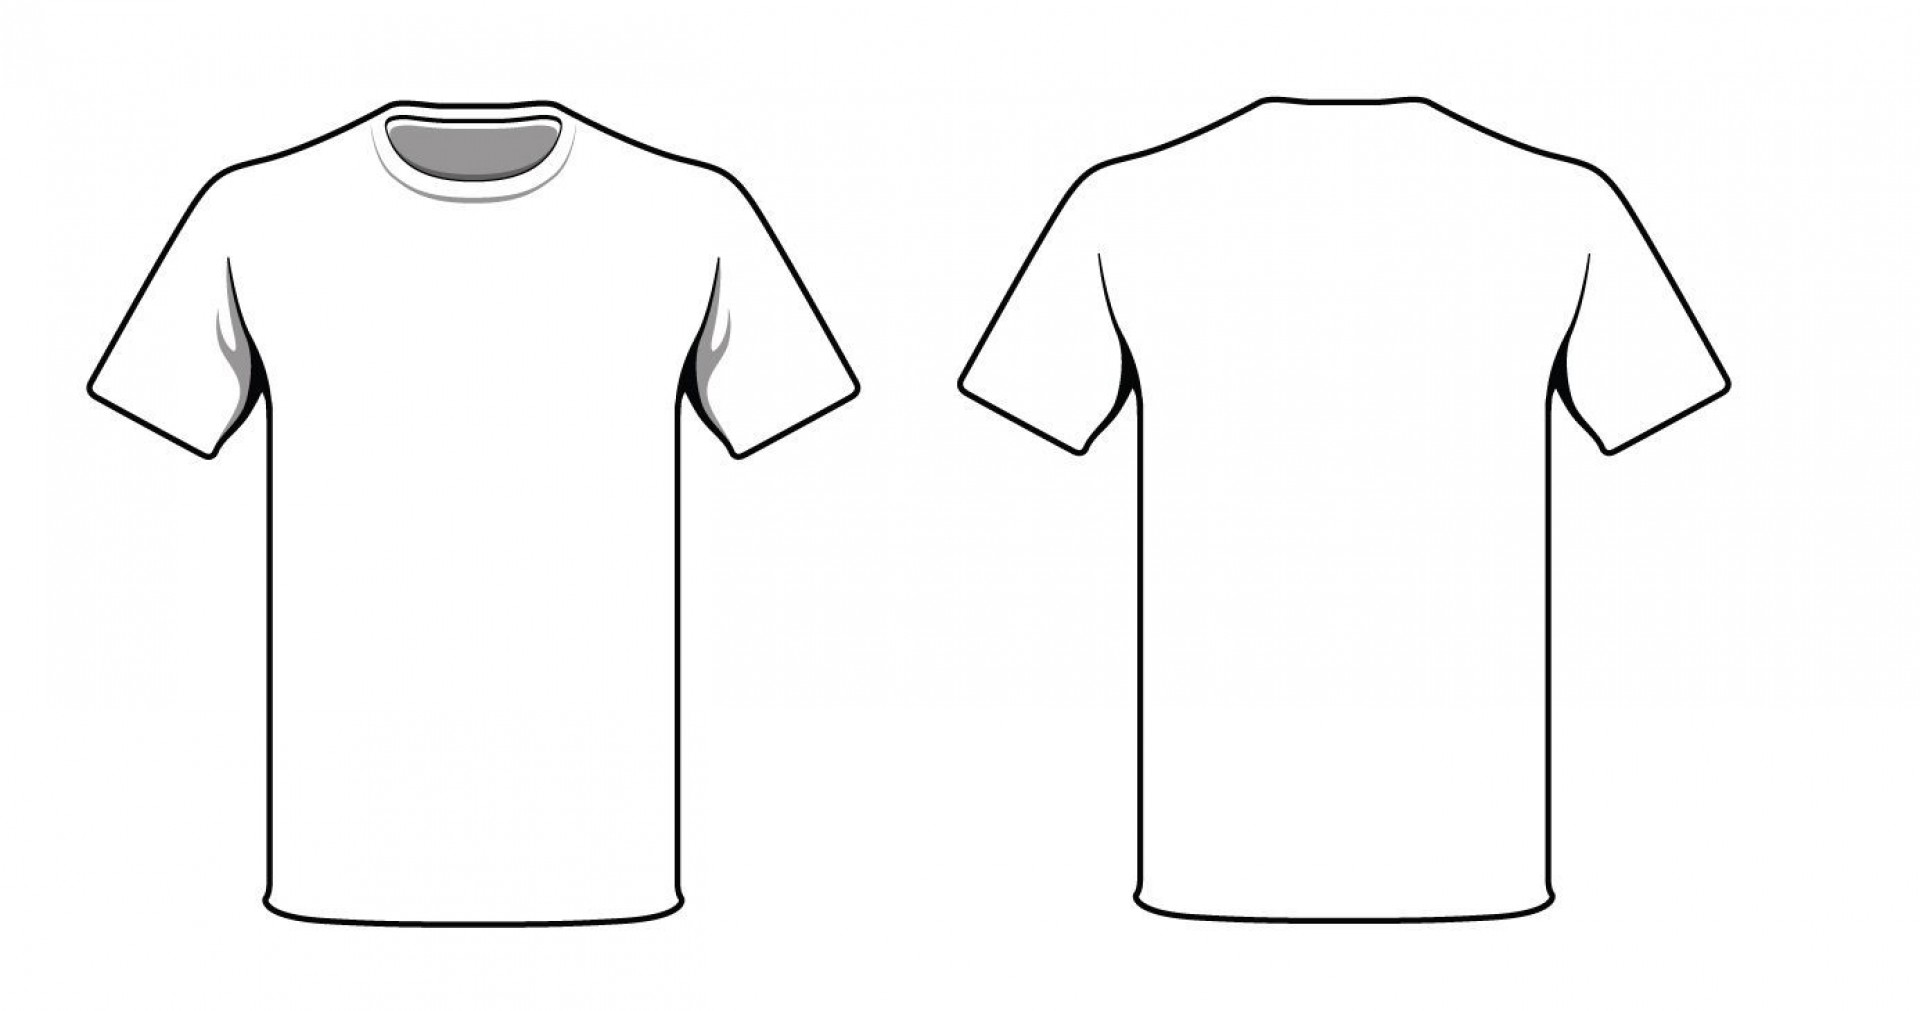 005 Awful T Shirt Template Design Sample  Psd Free Download Editable1920